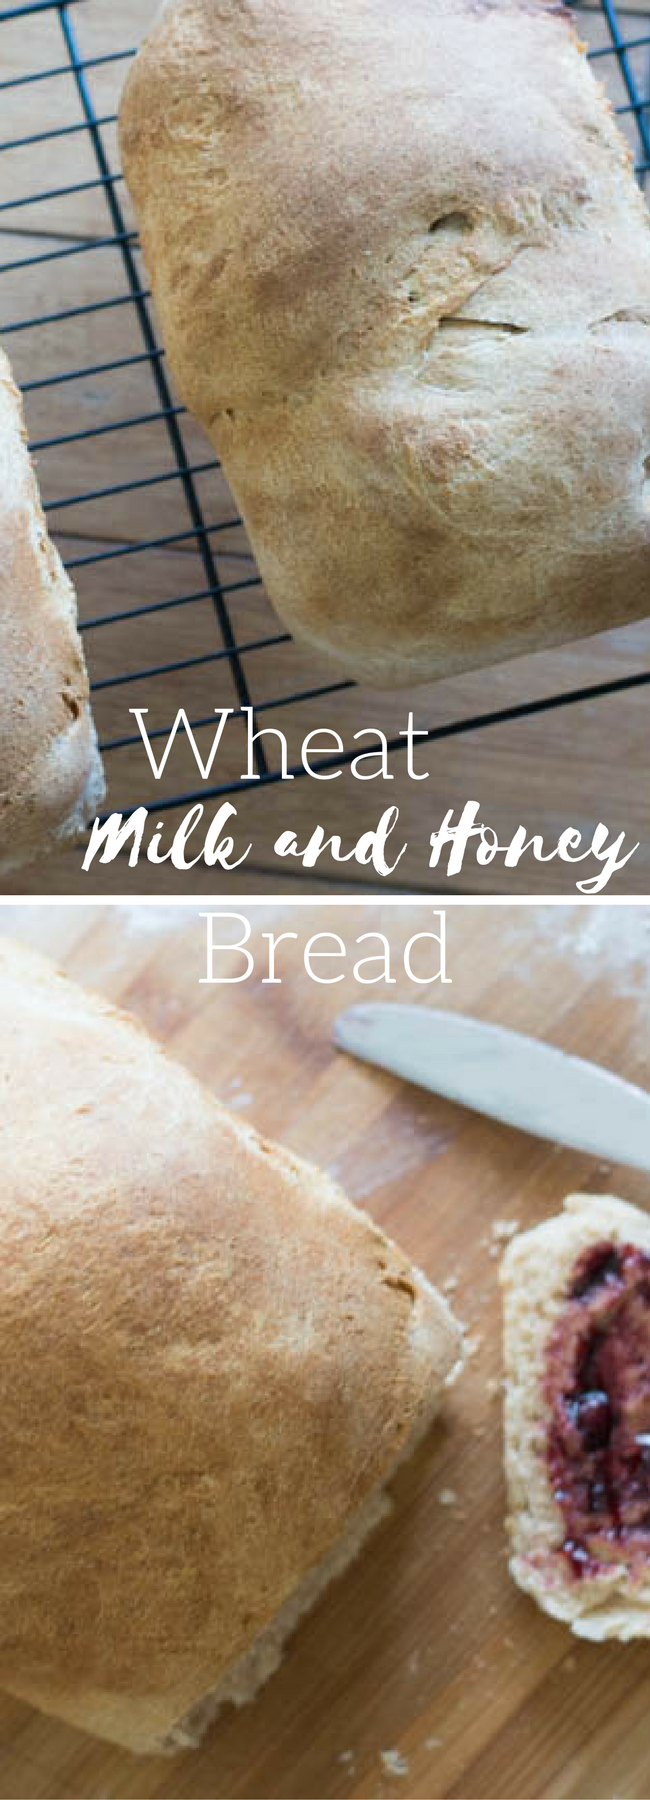 Wheat Bread / Homemade Wheat Bread / Milk and Honey Bread / Wheat Milk and Honey Bread / Homemade Bread / Bread Making